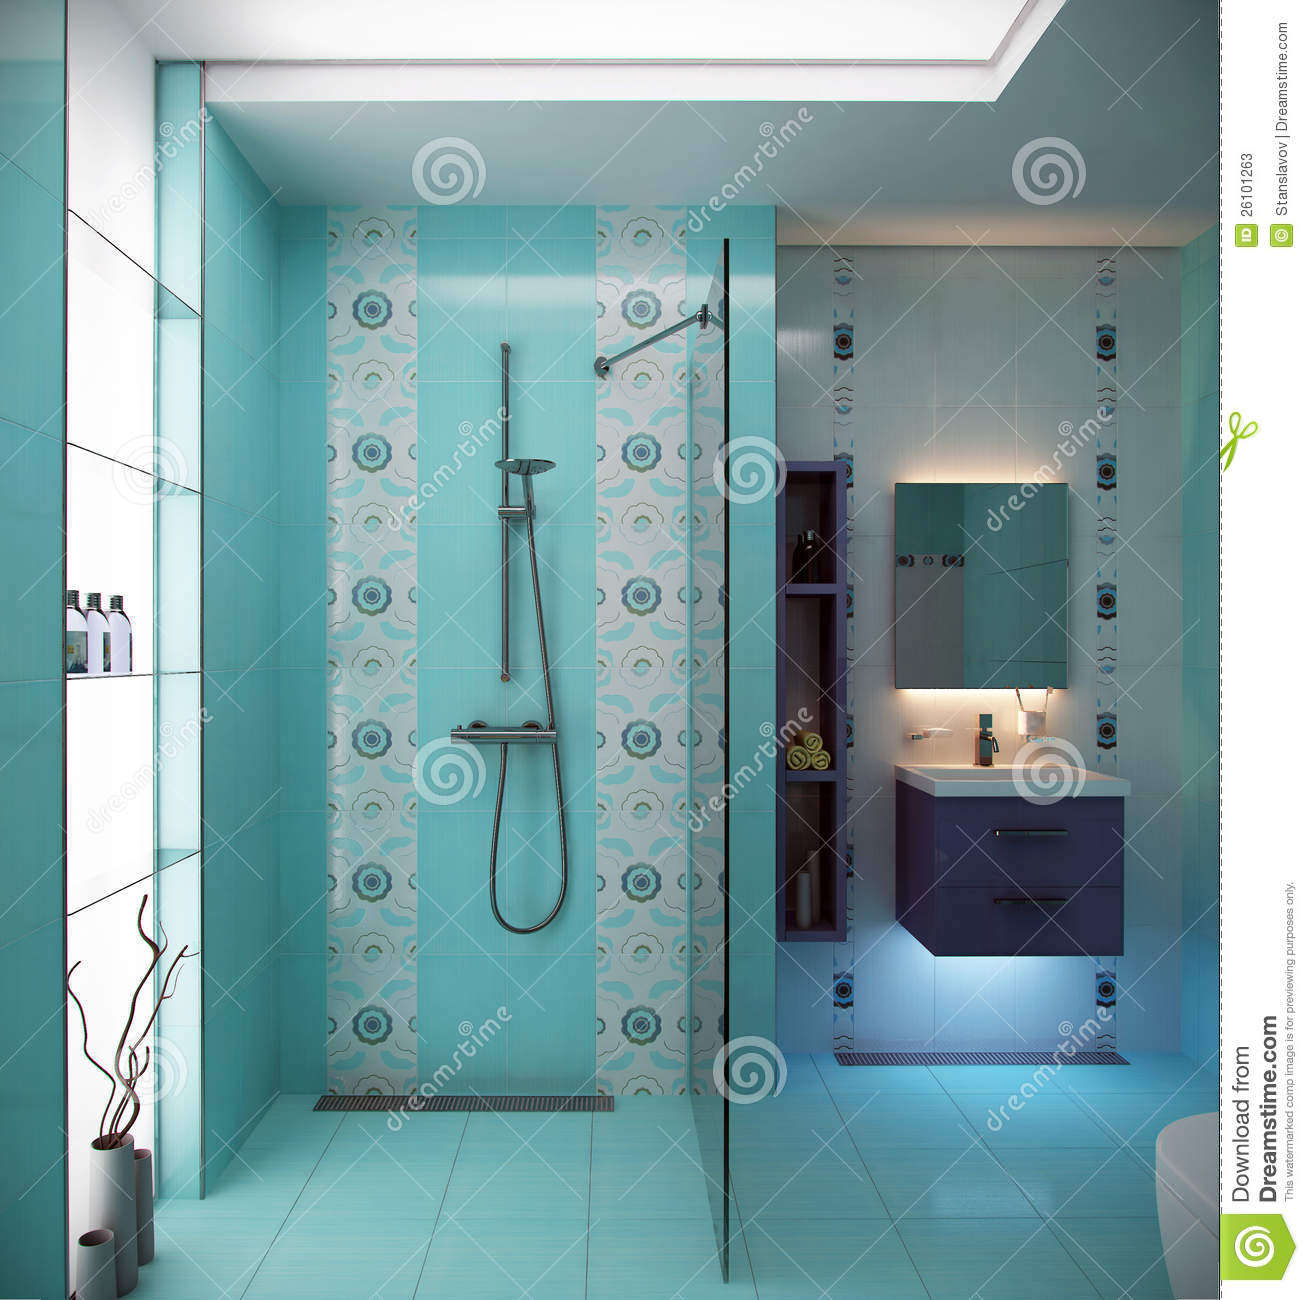 Tiffany blue bathroom designs - Amazing Blue Bathroom Scene Stock Photos Image With Blue Bathroom